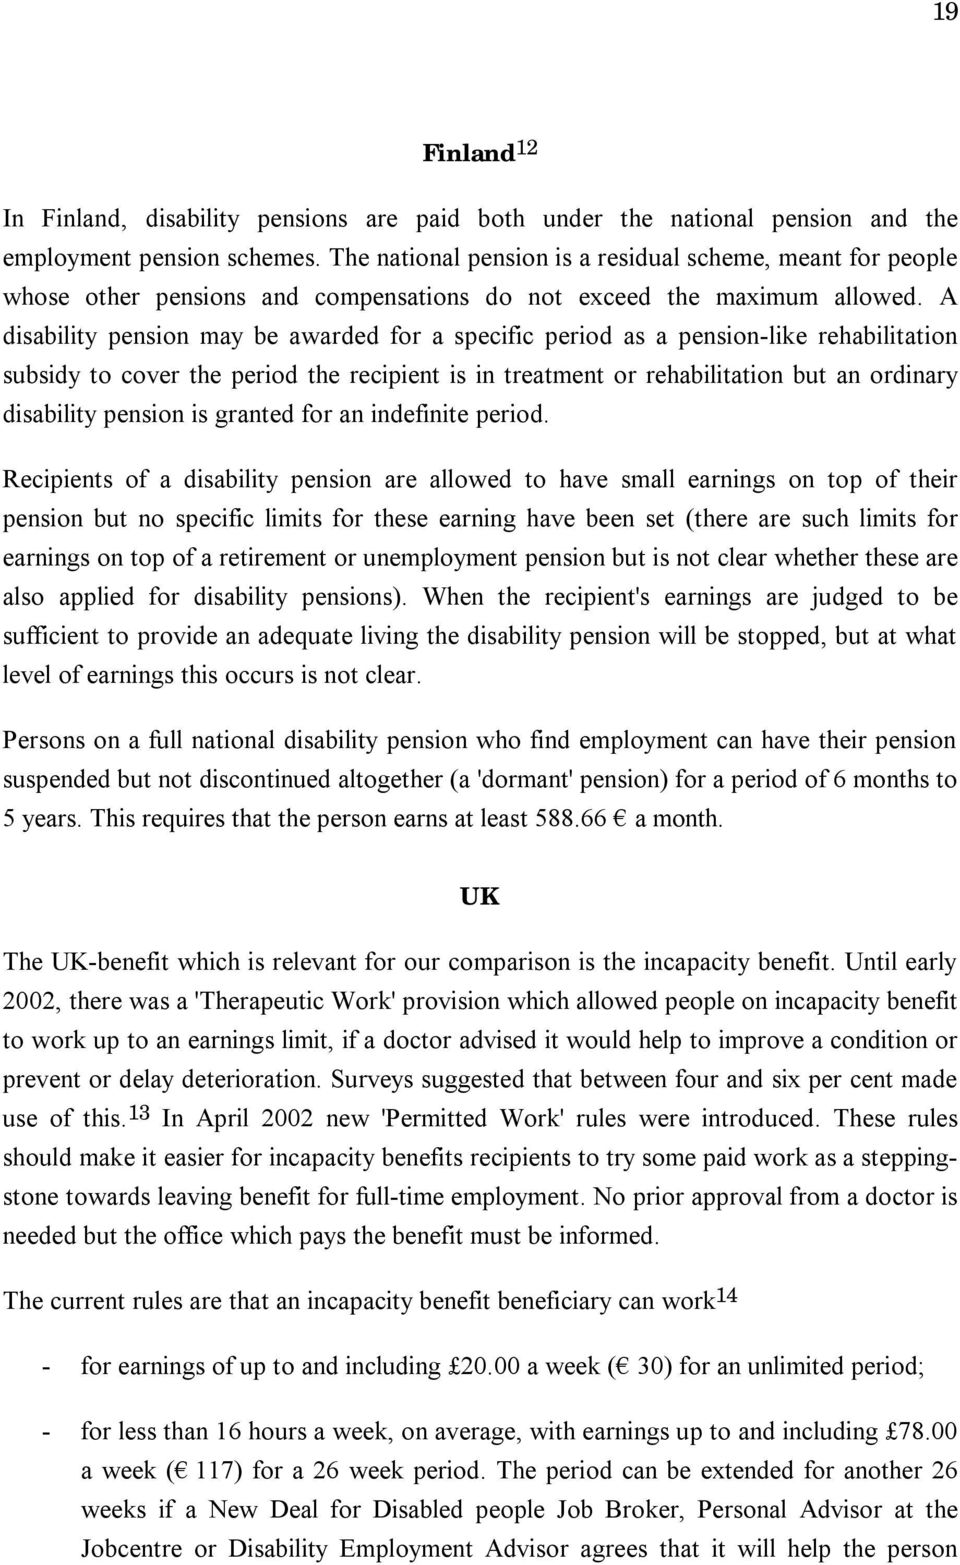 A disability pension may be awarded for a specific period as a pension-like rehabilitation subsidy to cover the period the recipient is in treatment or rehabilitation but an ordinary disability